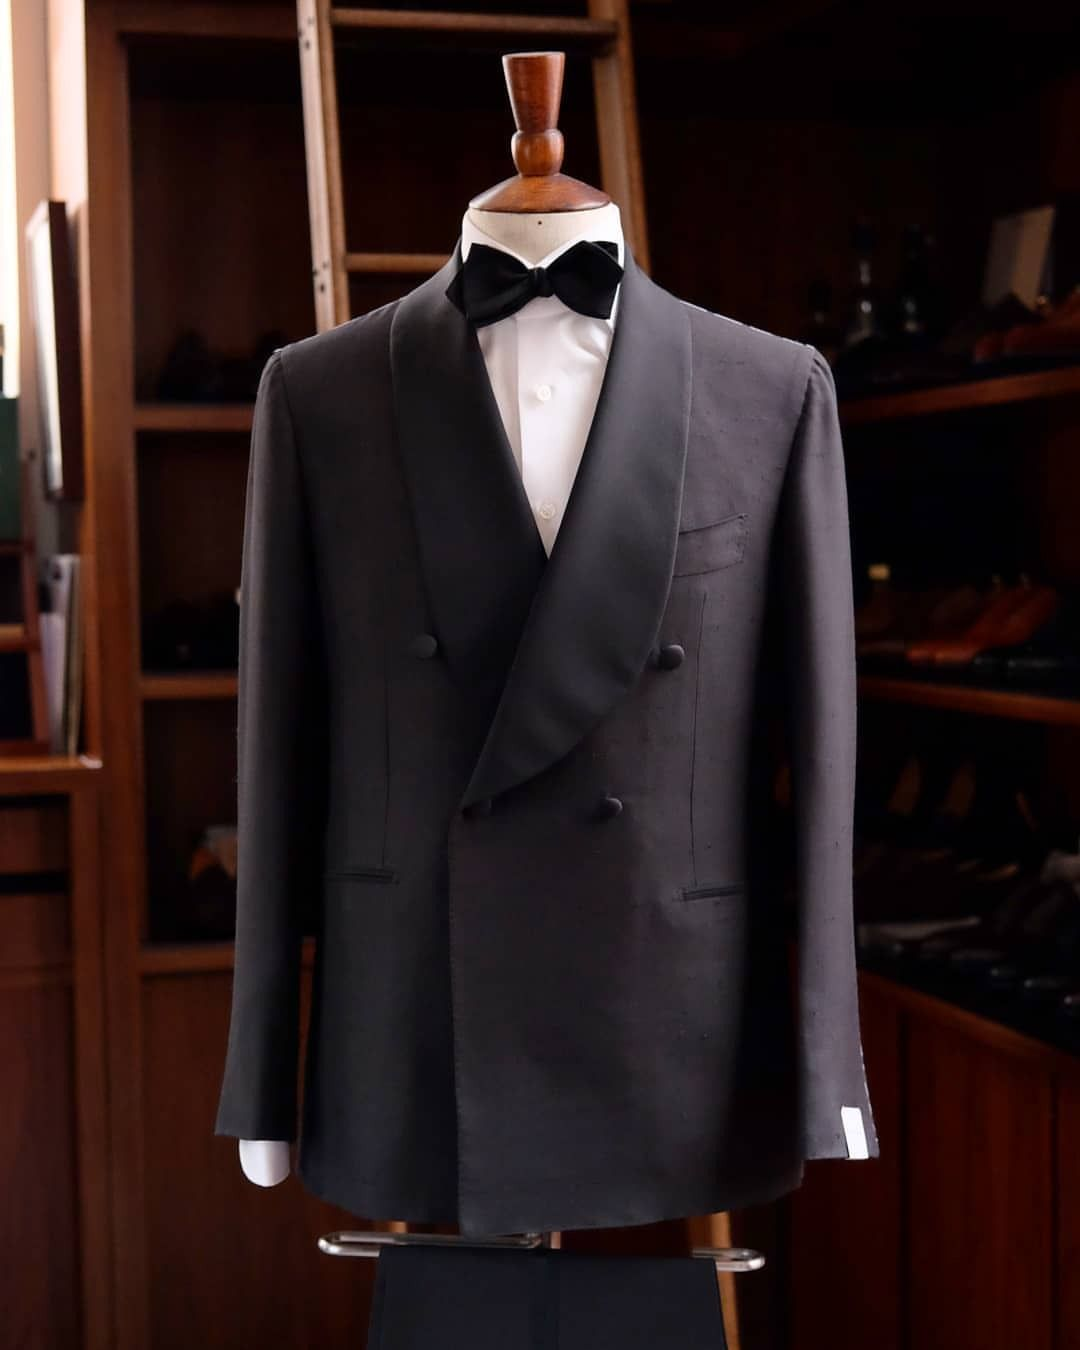 0a03748ae8b90d Our shawl collar tuxedo model by Orazio Luciano inspired by the amazing  ivory shawl dinner jacket that Humphrey Bogart wore in Casablanca.